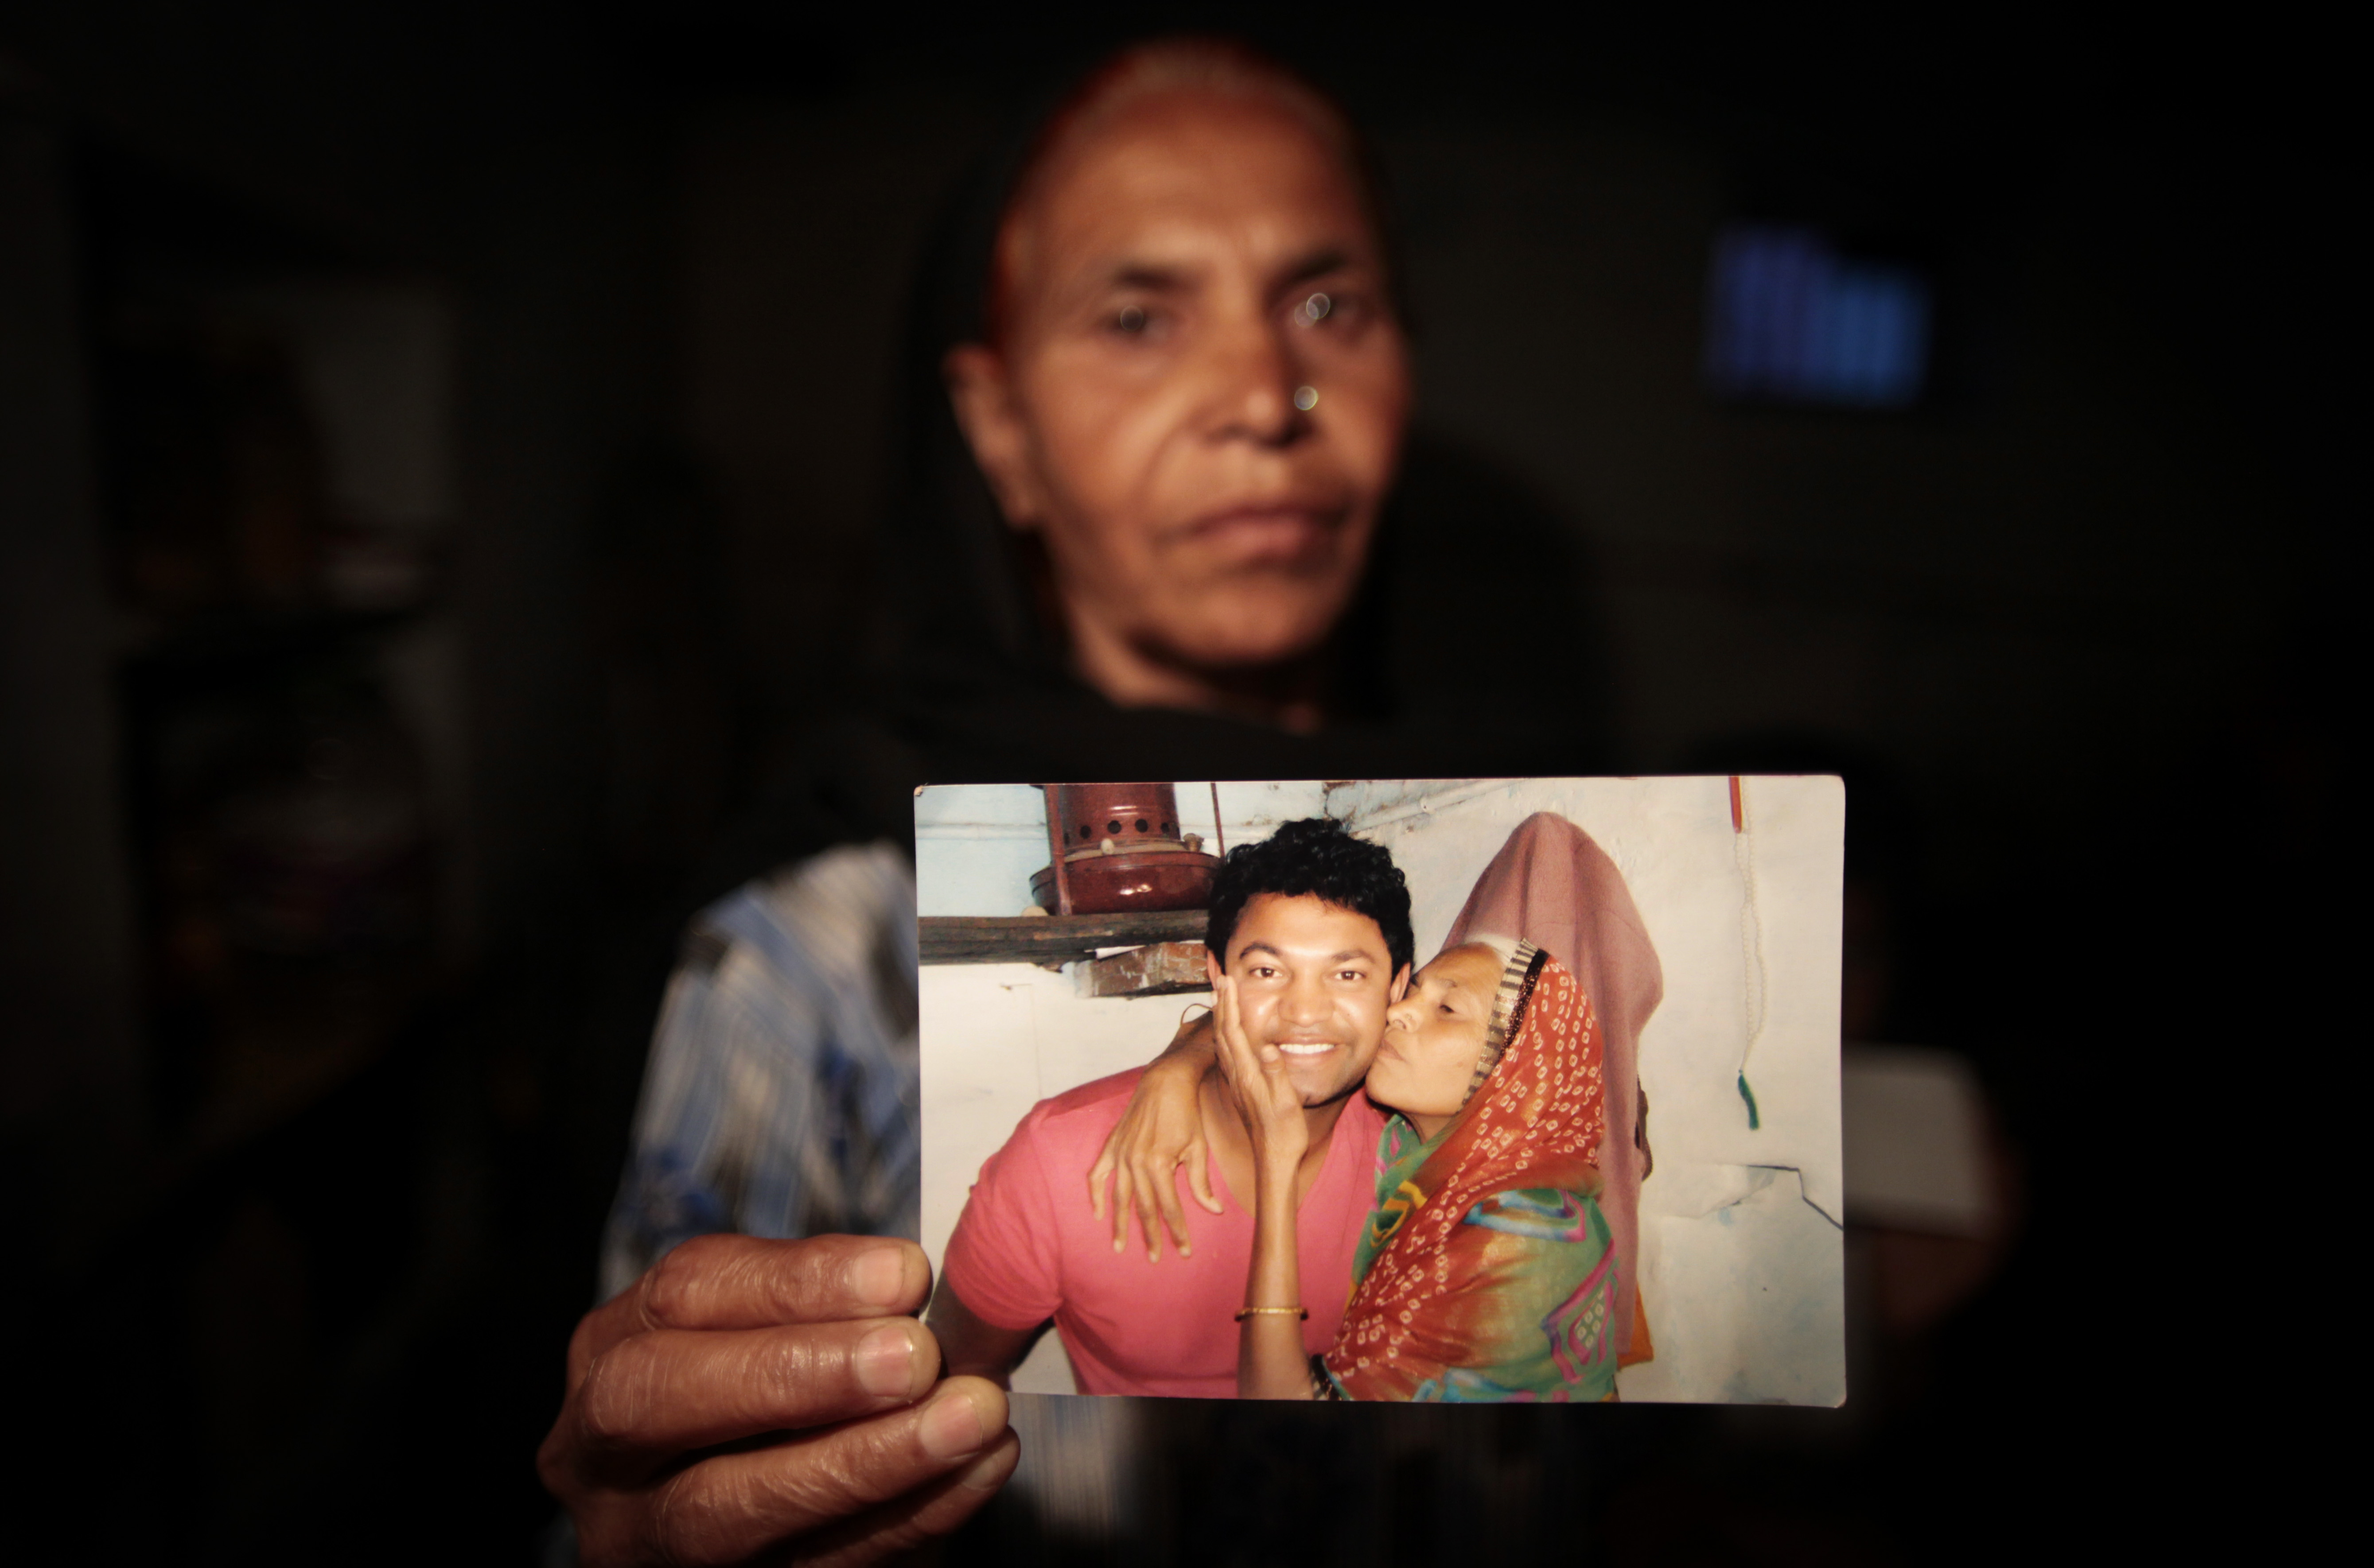 In this May 10, 2012 photo, Fatima Munshi, mother of Saroo, holds up a photo from their reunion in February 2012 at her home in Khandwa, India. Living in Australia, Saroo Brierley, 30, was reunited with his biological mother, Munshi, 25 years after an ill-fated train ride left him an orphan on the streets of Calcutta. Brierley will appear at this year's RootsTech, scheduled for Feb. 27-March 2 at the Salt Palace Convention Center.